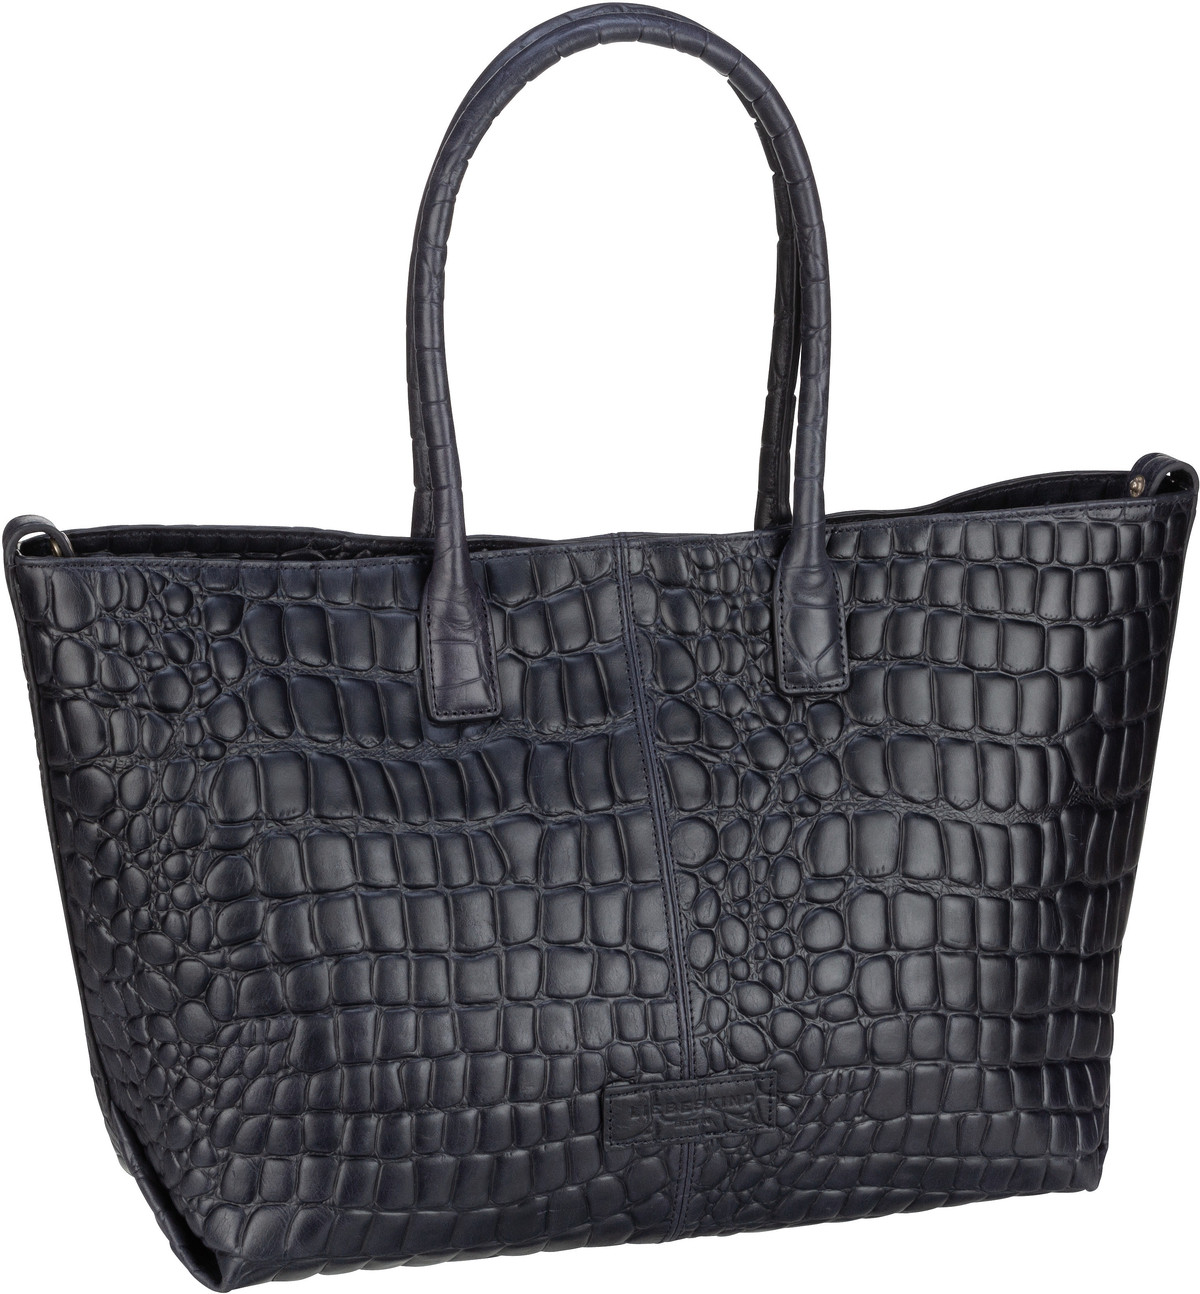 Berlin Handtasche Malibu 2 Chelsea Shopper M Croco Midnight Sky